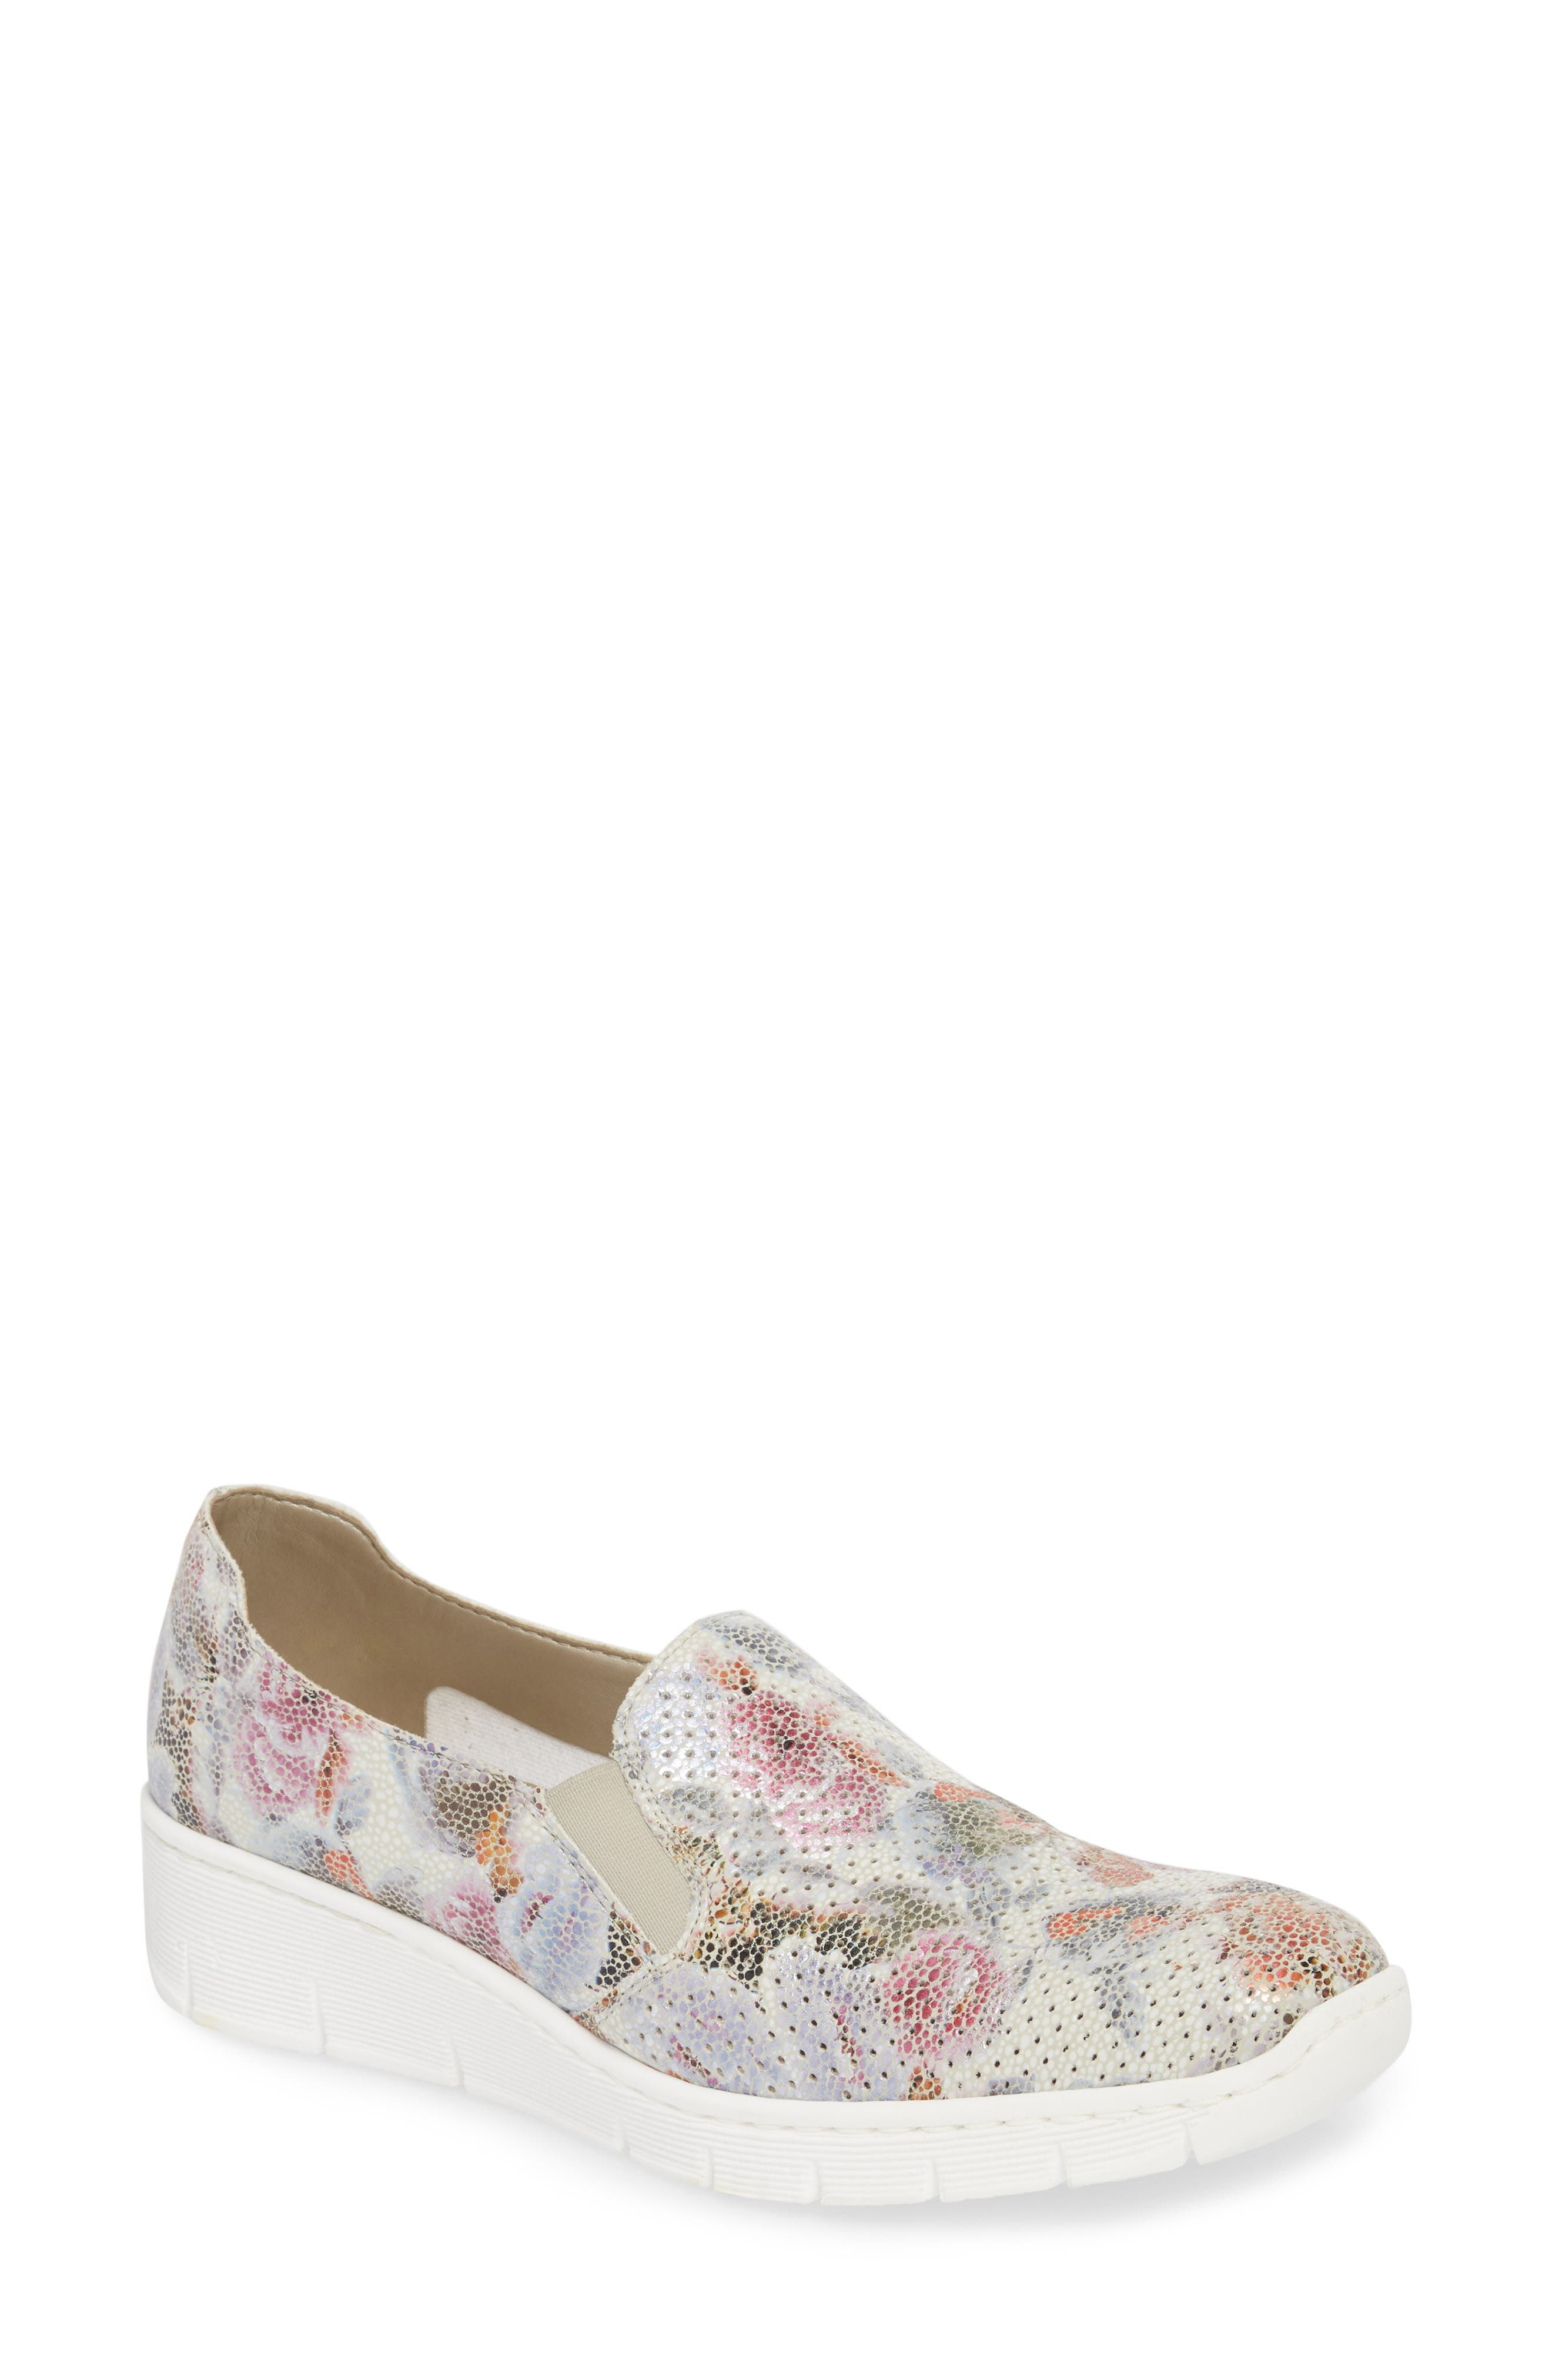 Doris A5 Wedge Sneaker,                             Main thumbnail 1, color,                             105